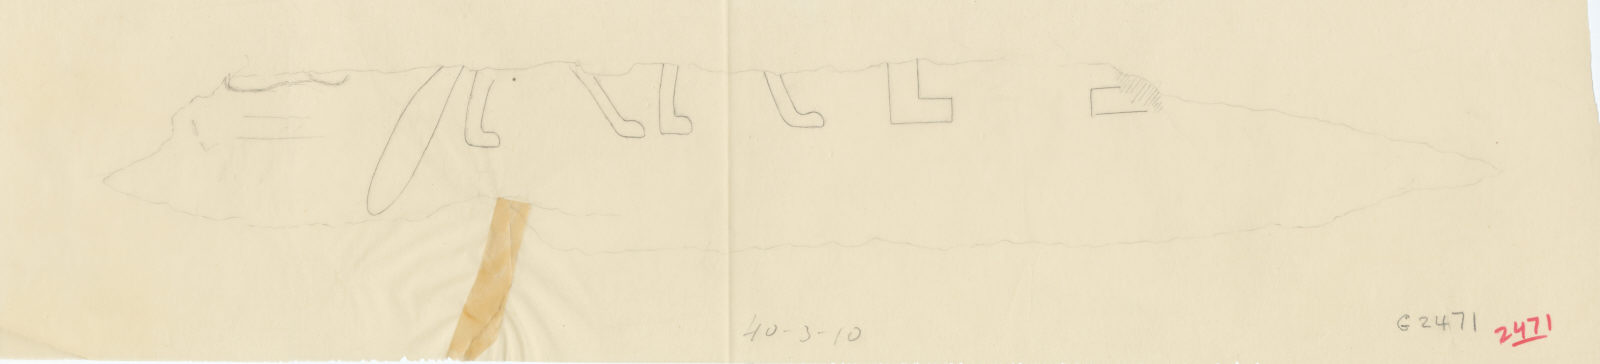 Drawings: G 2471 (N of): relief fragment